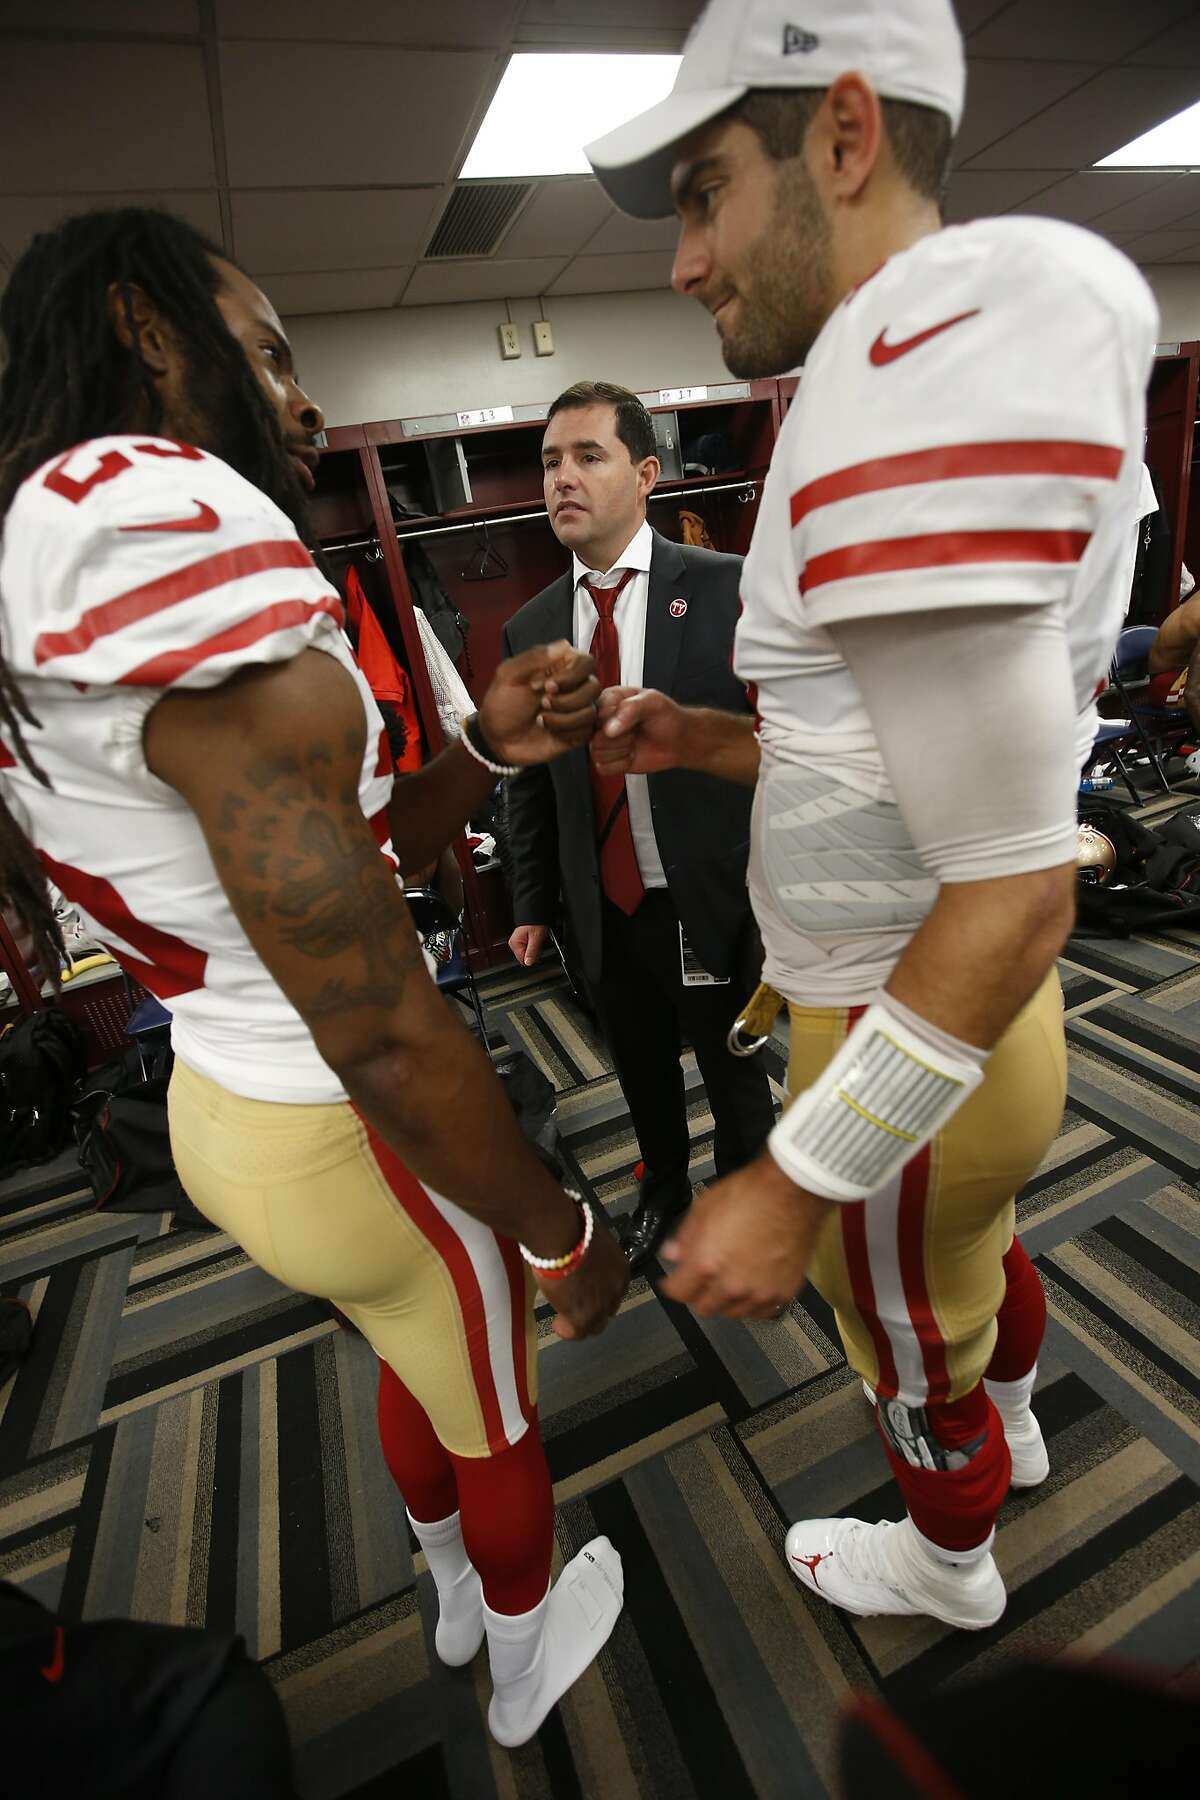 NEW ORLEANS, LA - DECEMBER 8: Richard Sherman #25, CEO Jed York and Jimmy Garoppolo #10 of the San Francisco 49ers celebrate in the locker room following the game against the New Orleans Saints at the Mercedes-Benz Superdome on December 8, 2019 in New Orl